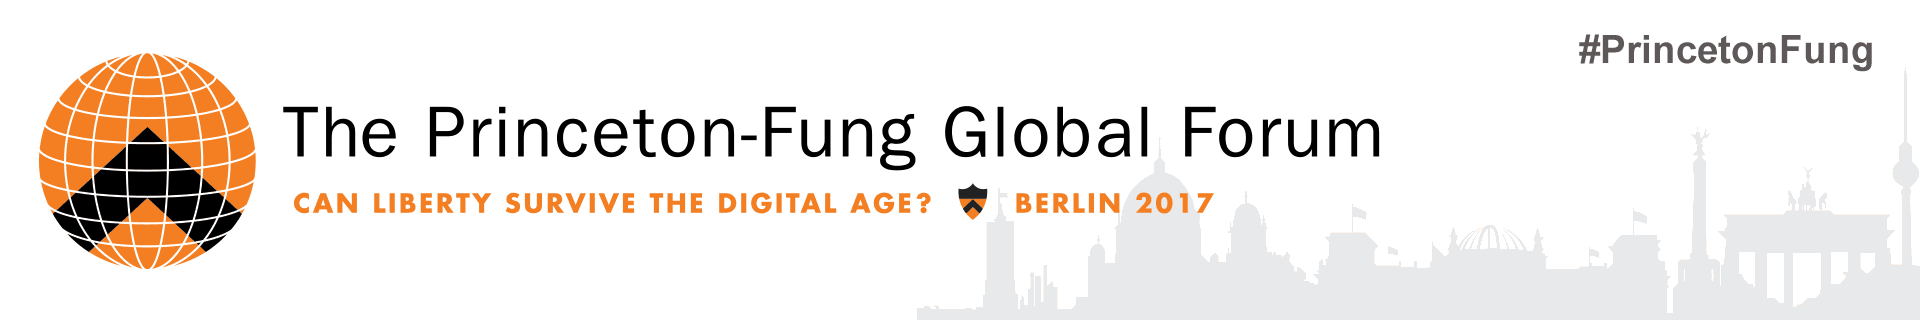 Princeton-Fung Global Forum